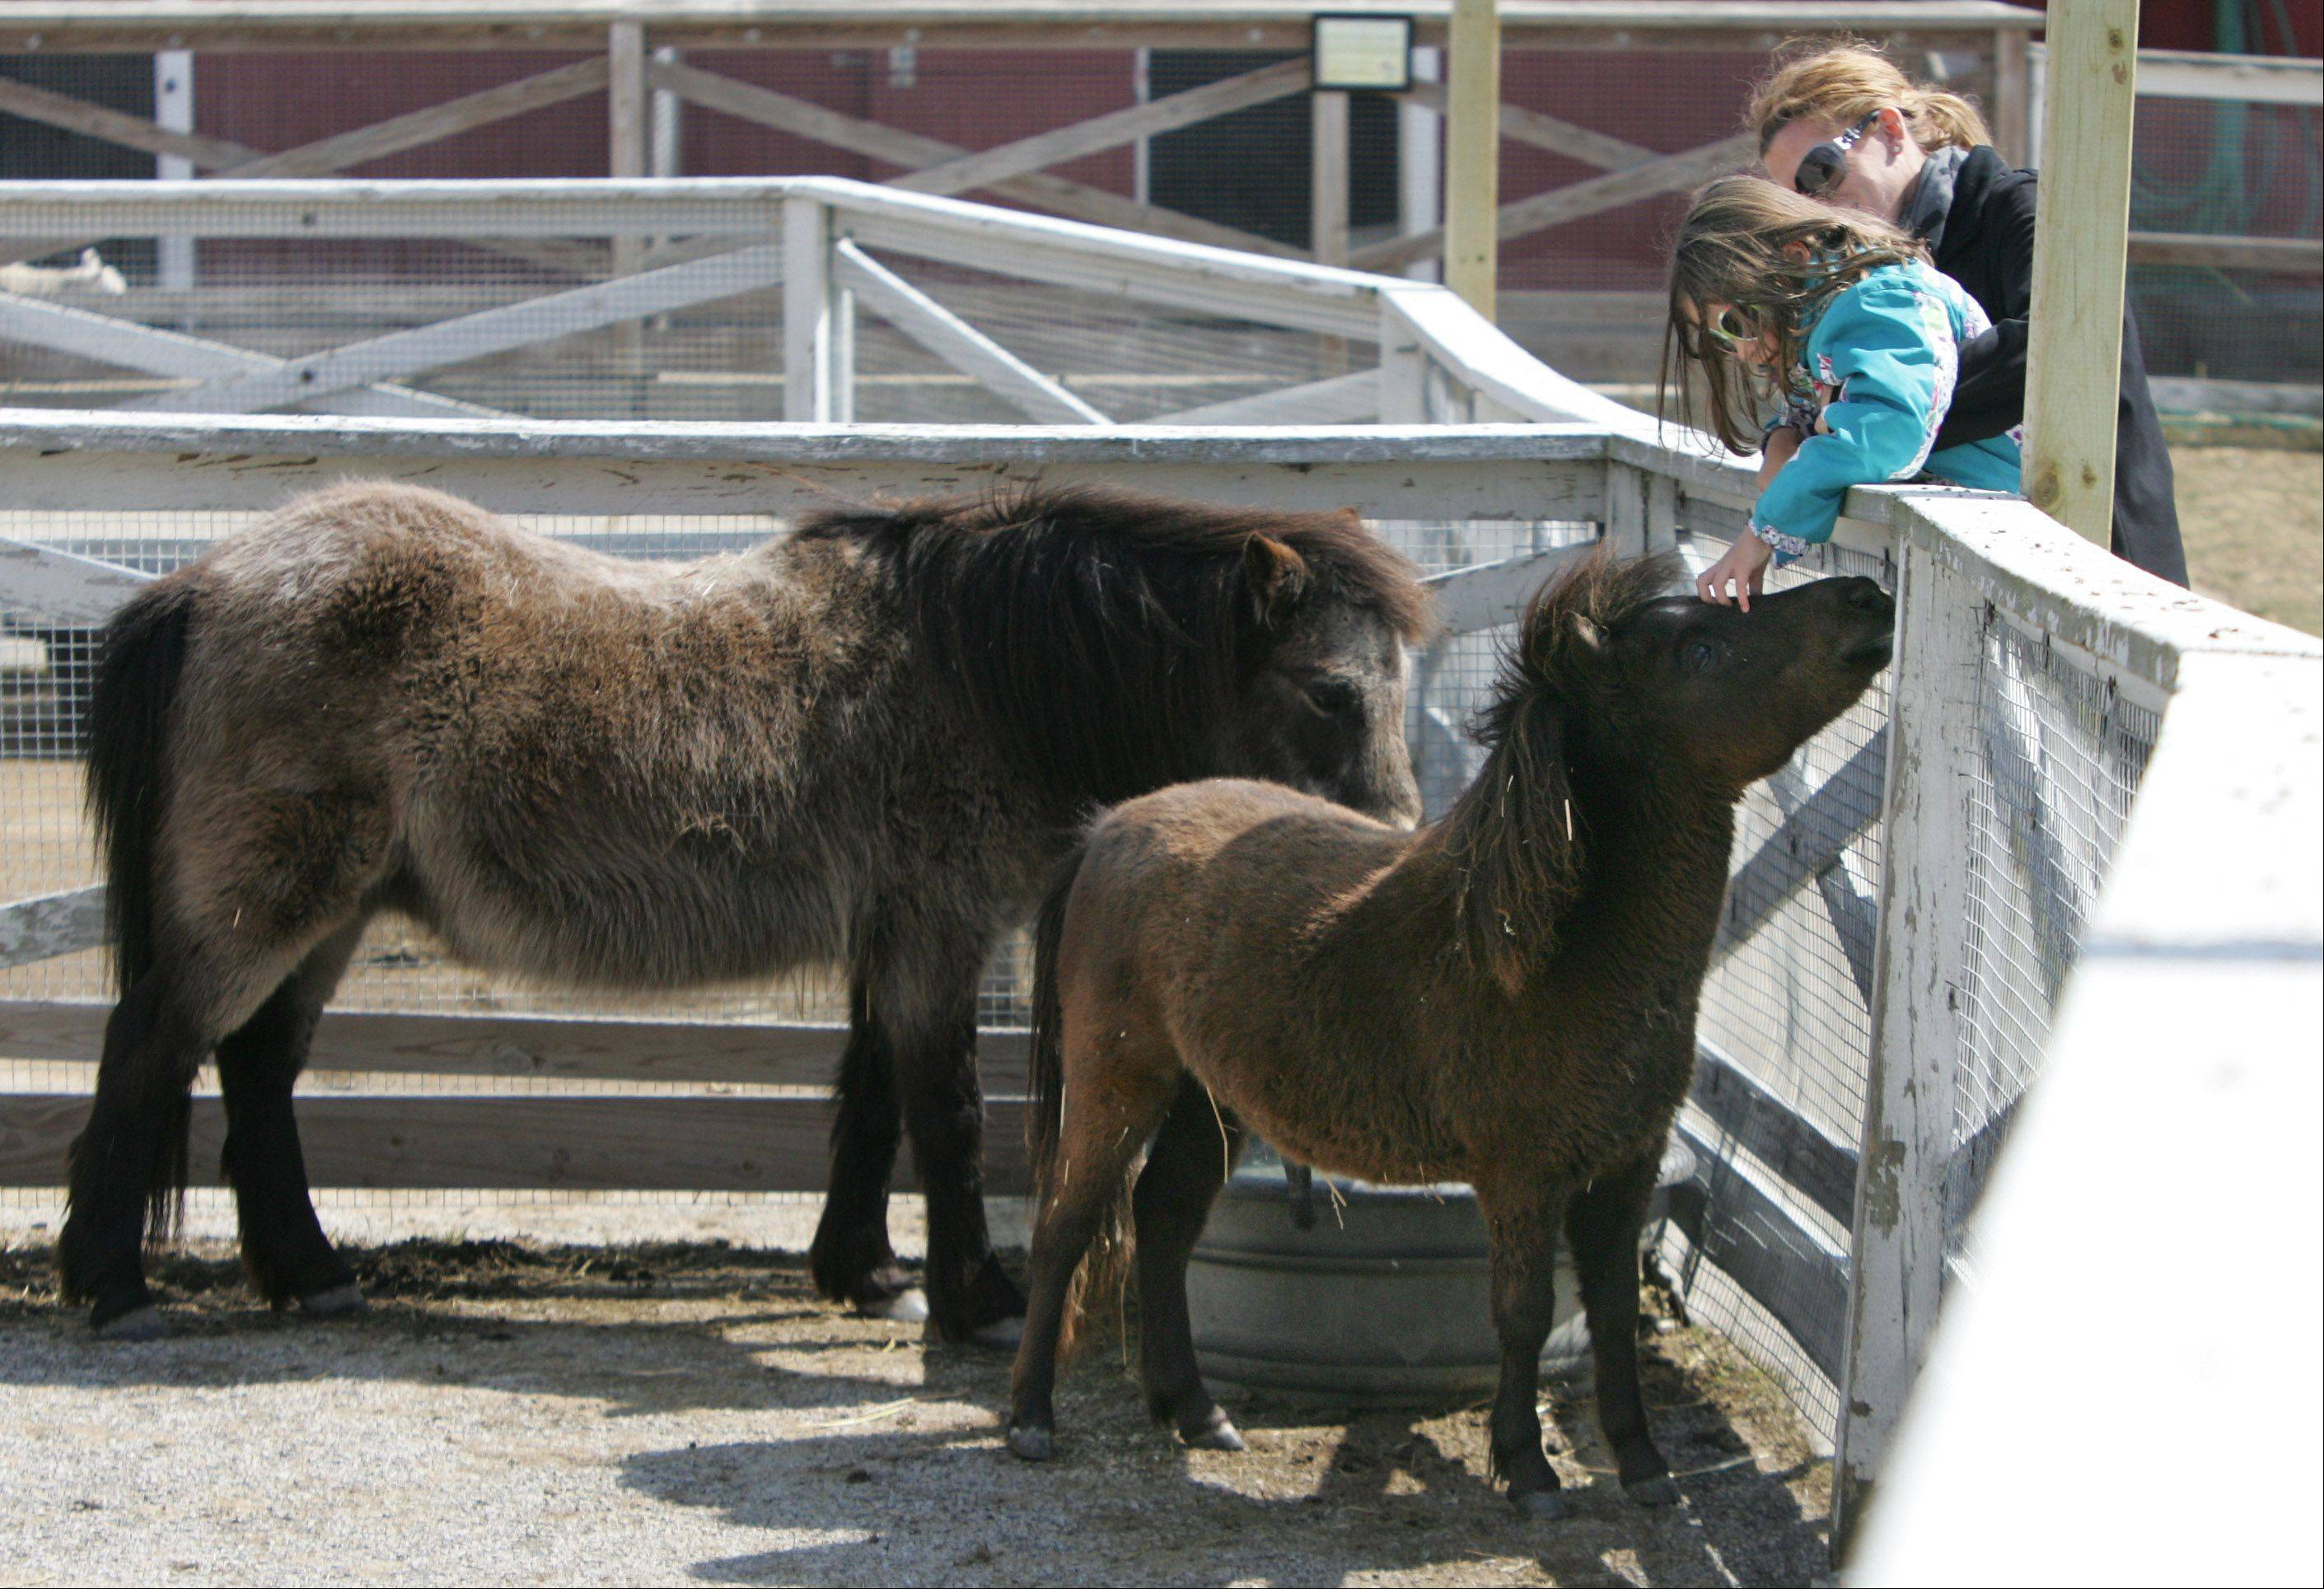 Anastasia Paras, of Chicago, holds her niece, Evalyn Moseley, 6, of Libertyville, as they pet a miniature horse named Levi at Lambs Farm Farmyard in Libertyville on Easter Sunday. This was opening weekend for the outdoor farm and miniature golf.